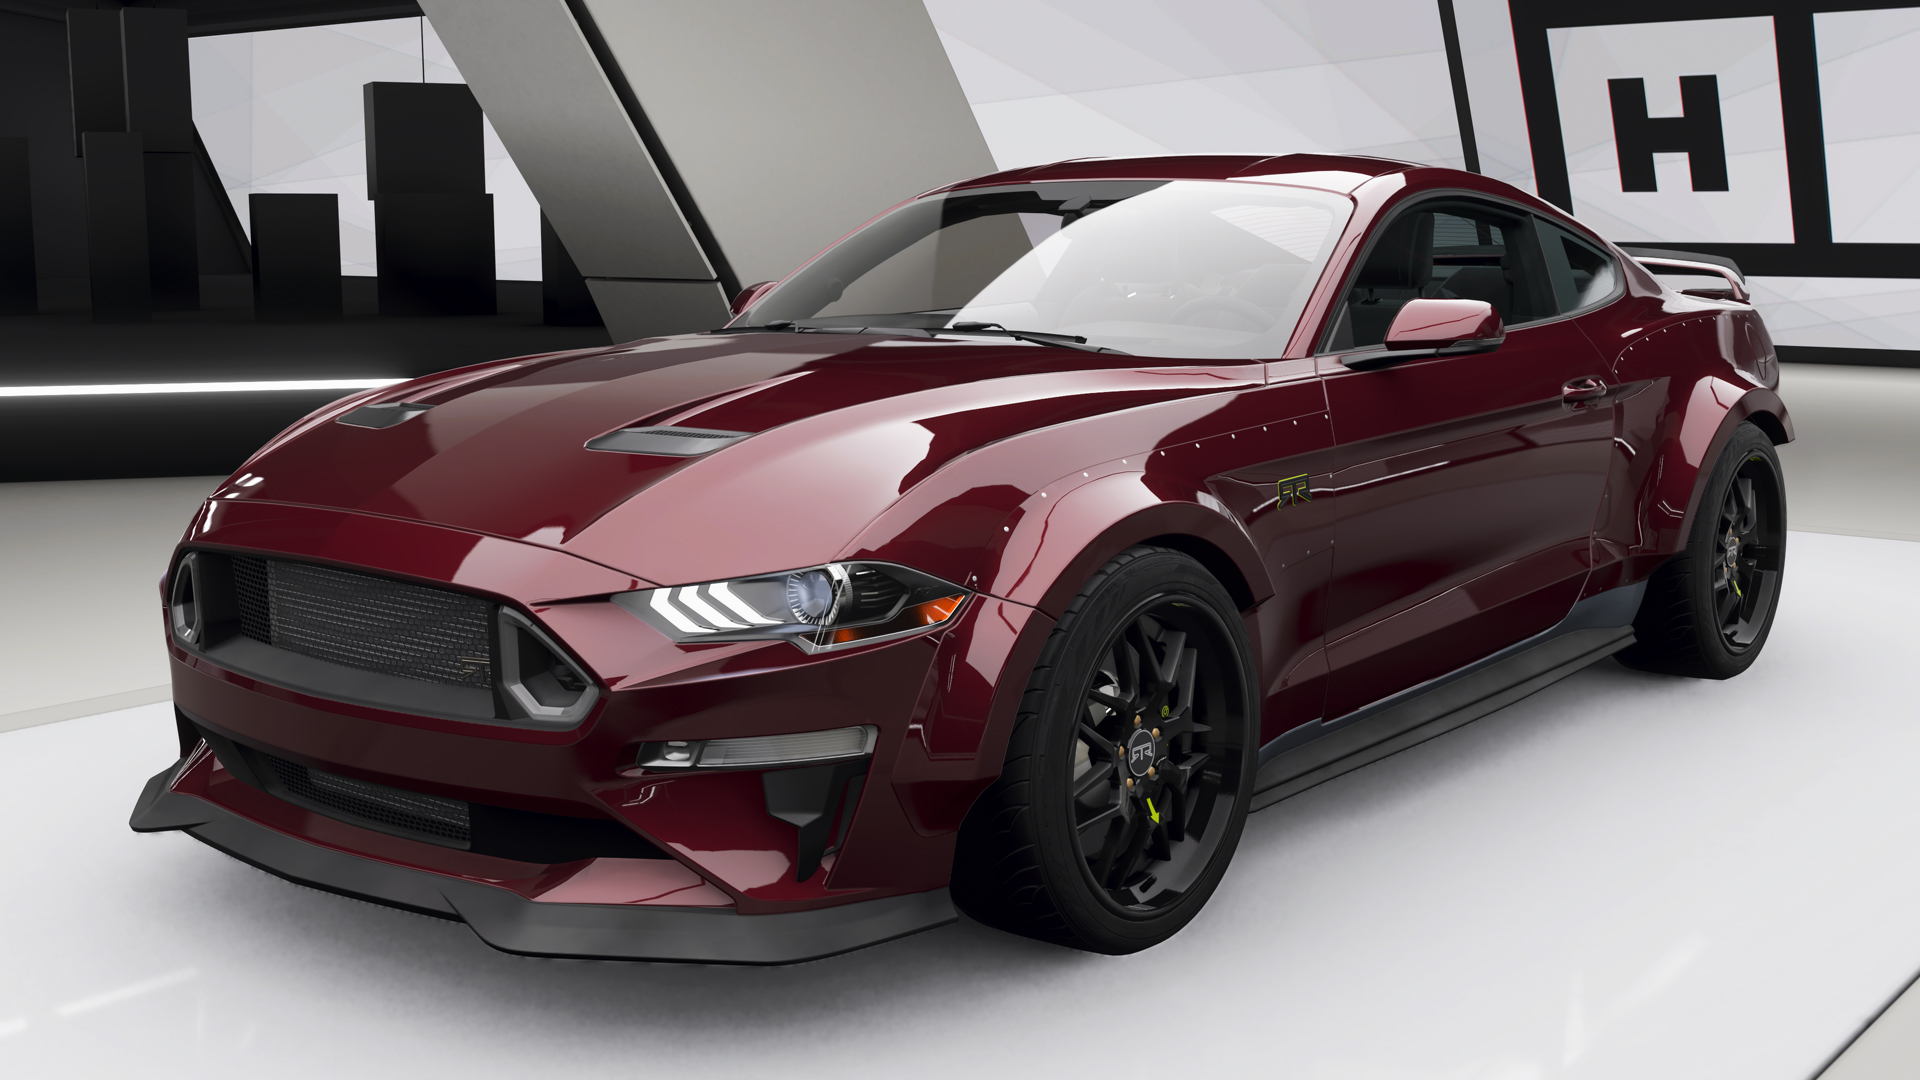 Ford mustang rtr spec 5 in forza horizon 4